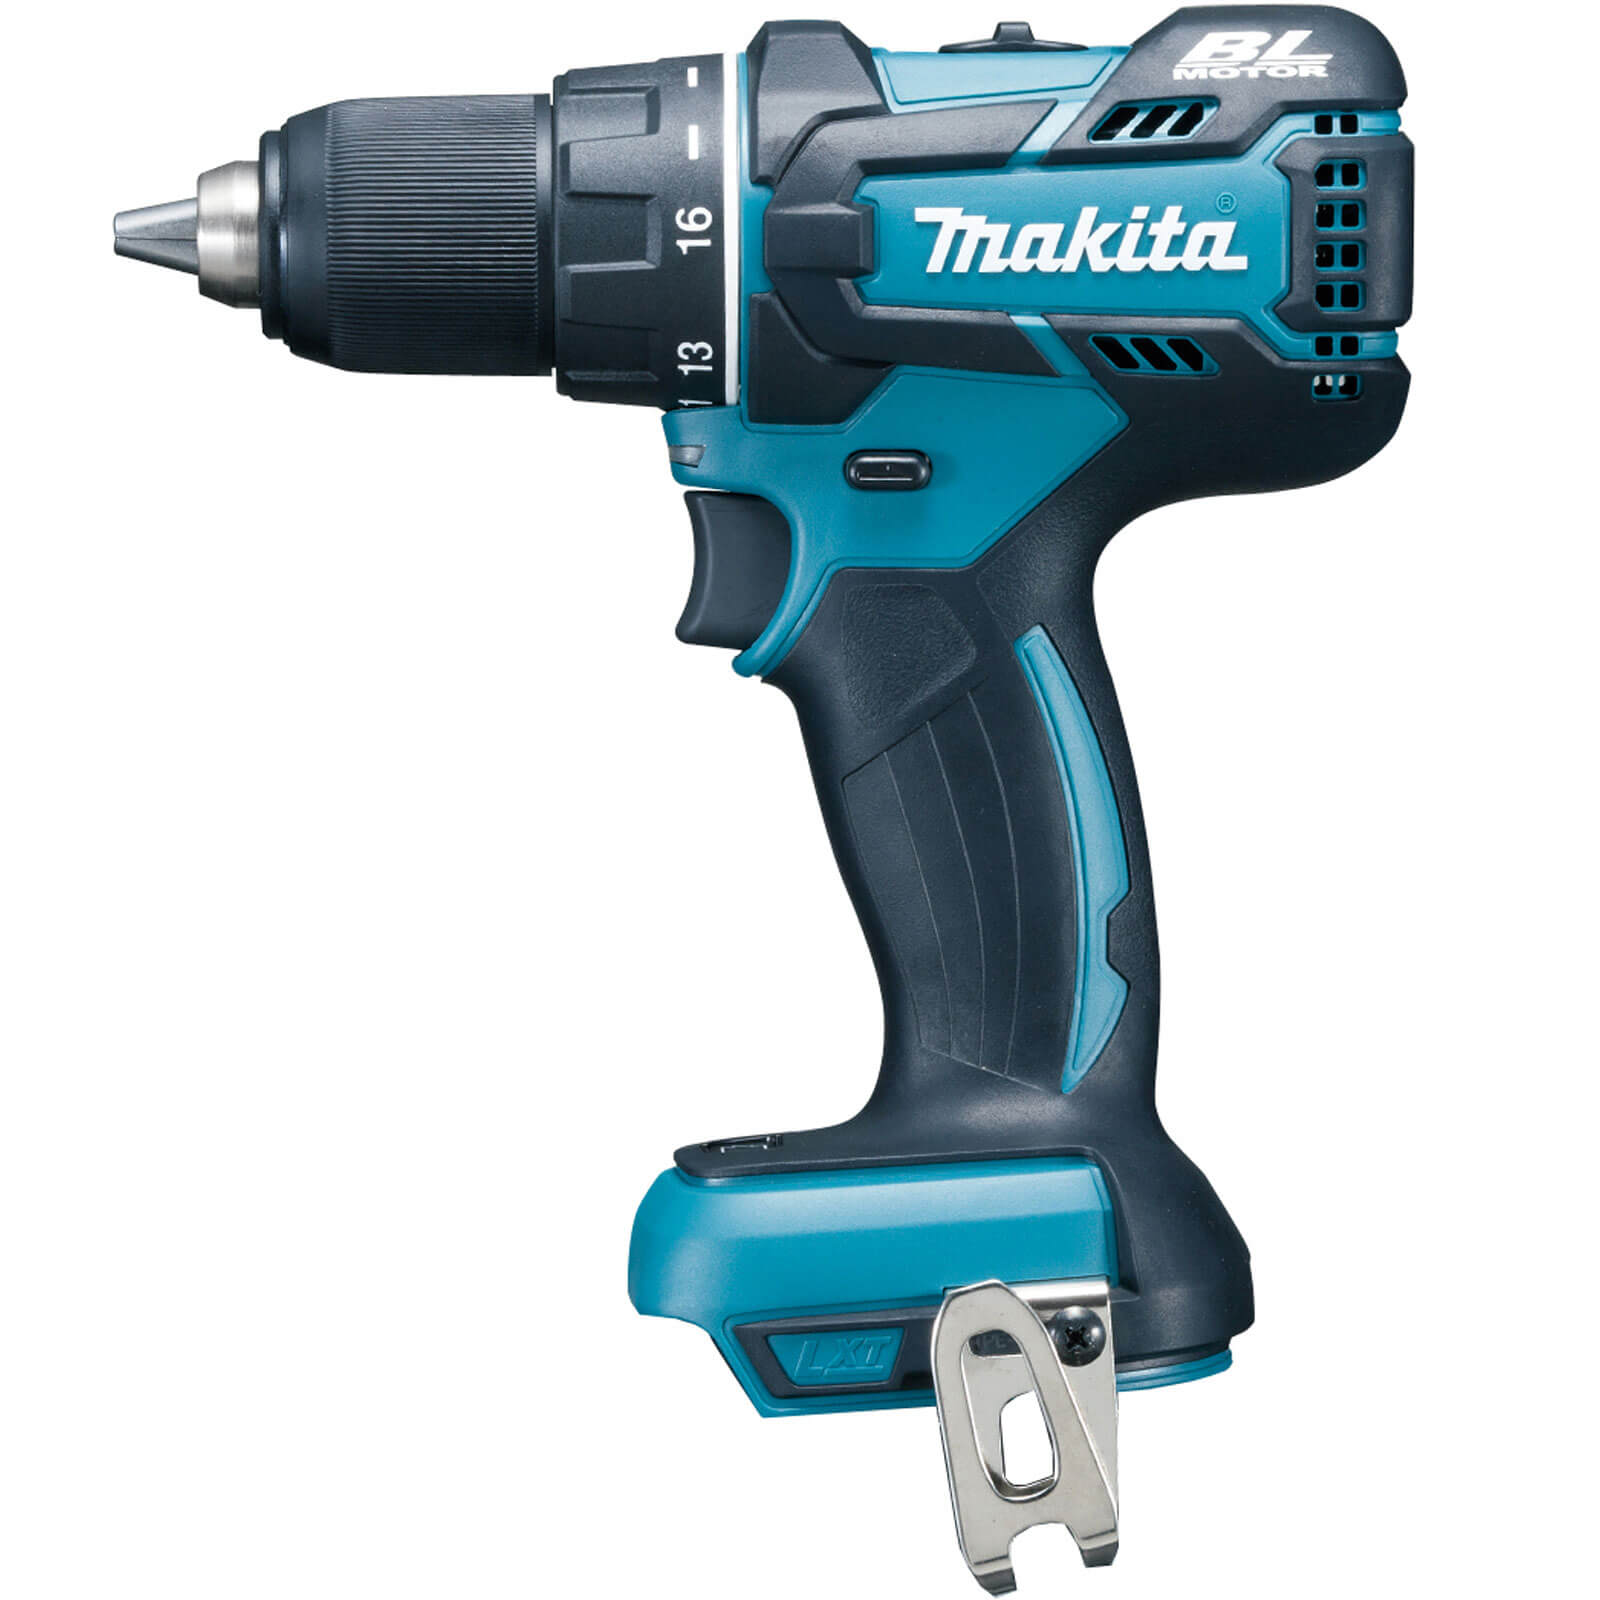 Makita DDF480Z 18v Cordless XPT Drill Driver without Battery or Charger